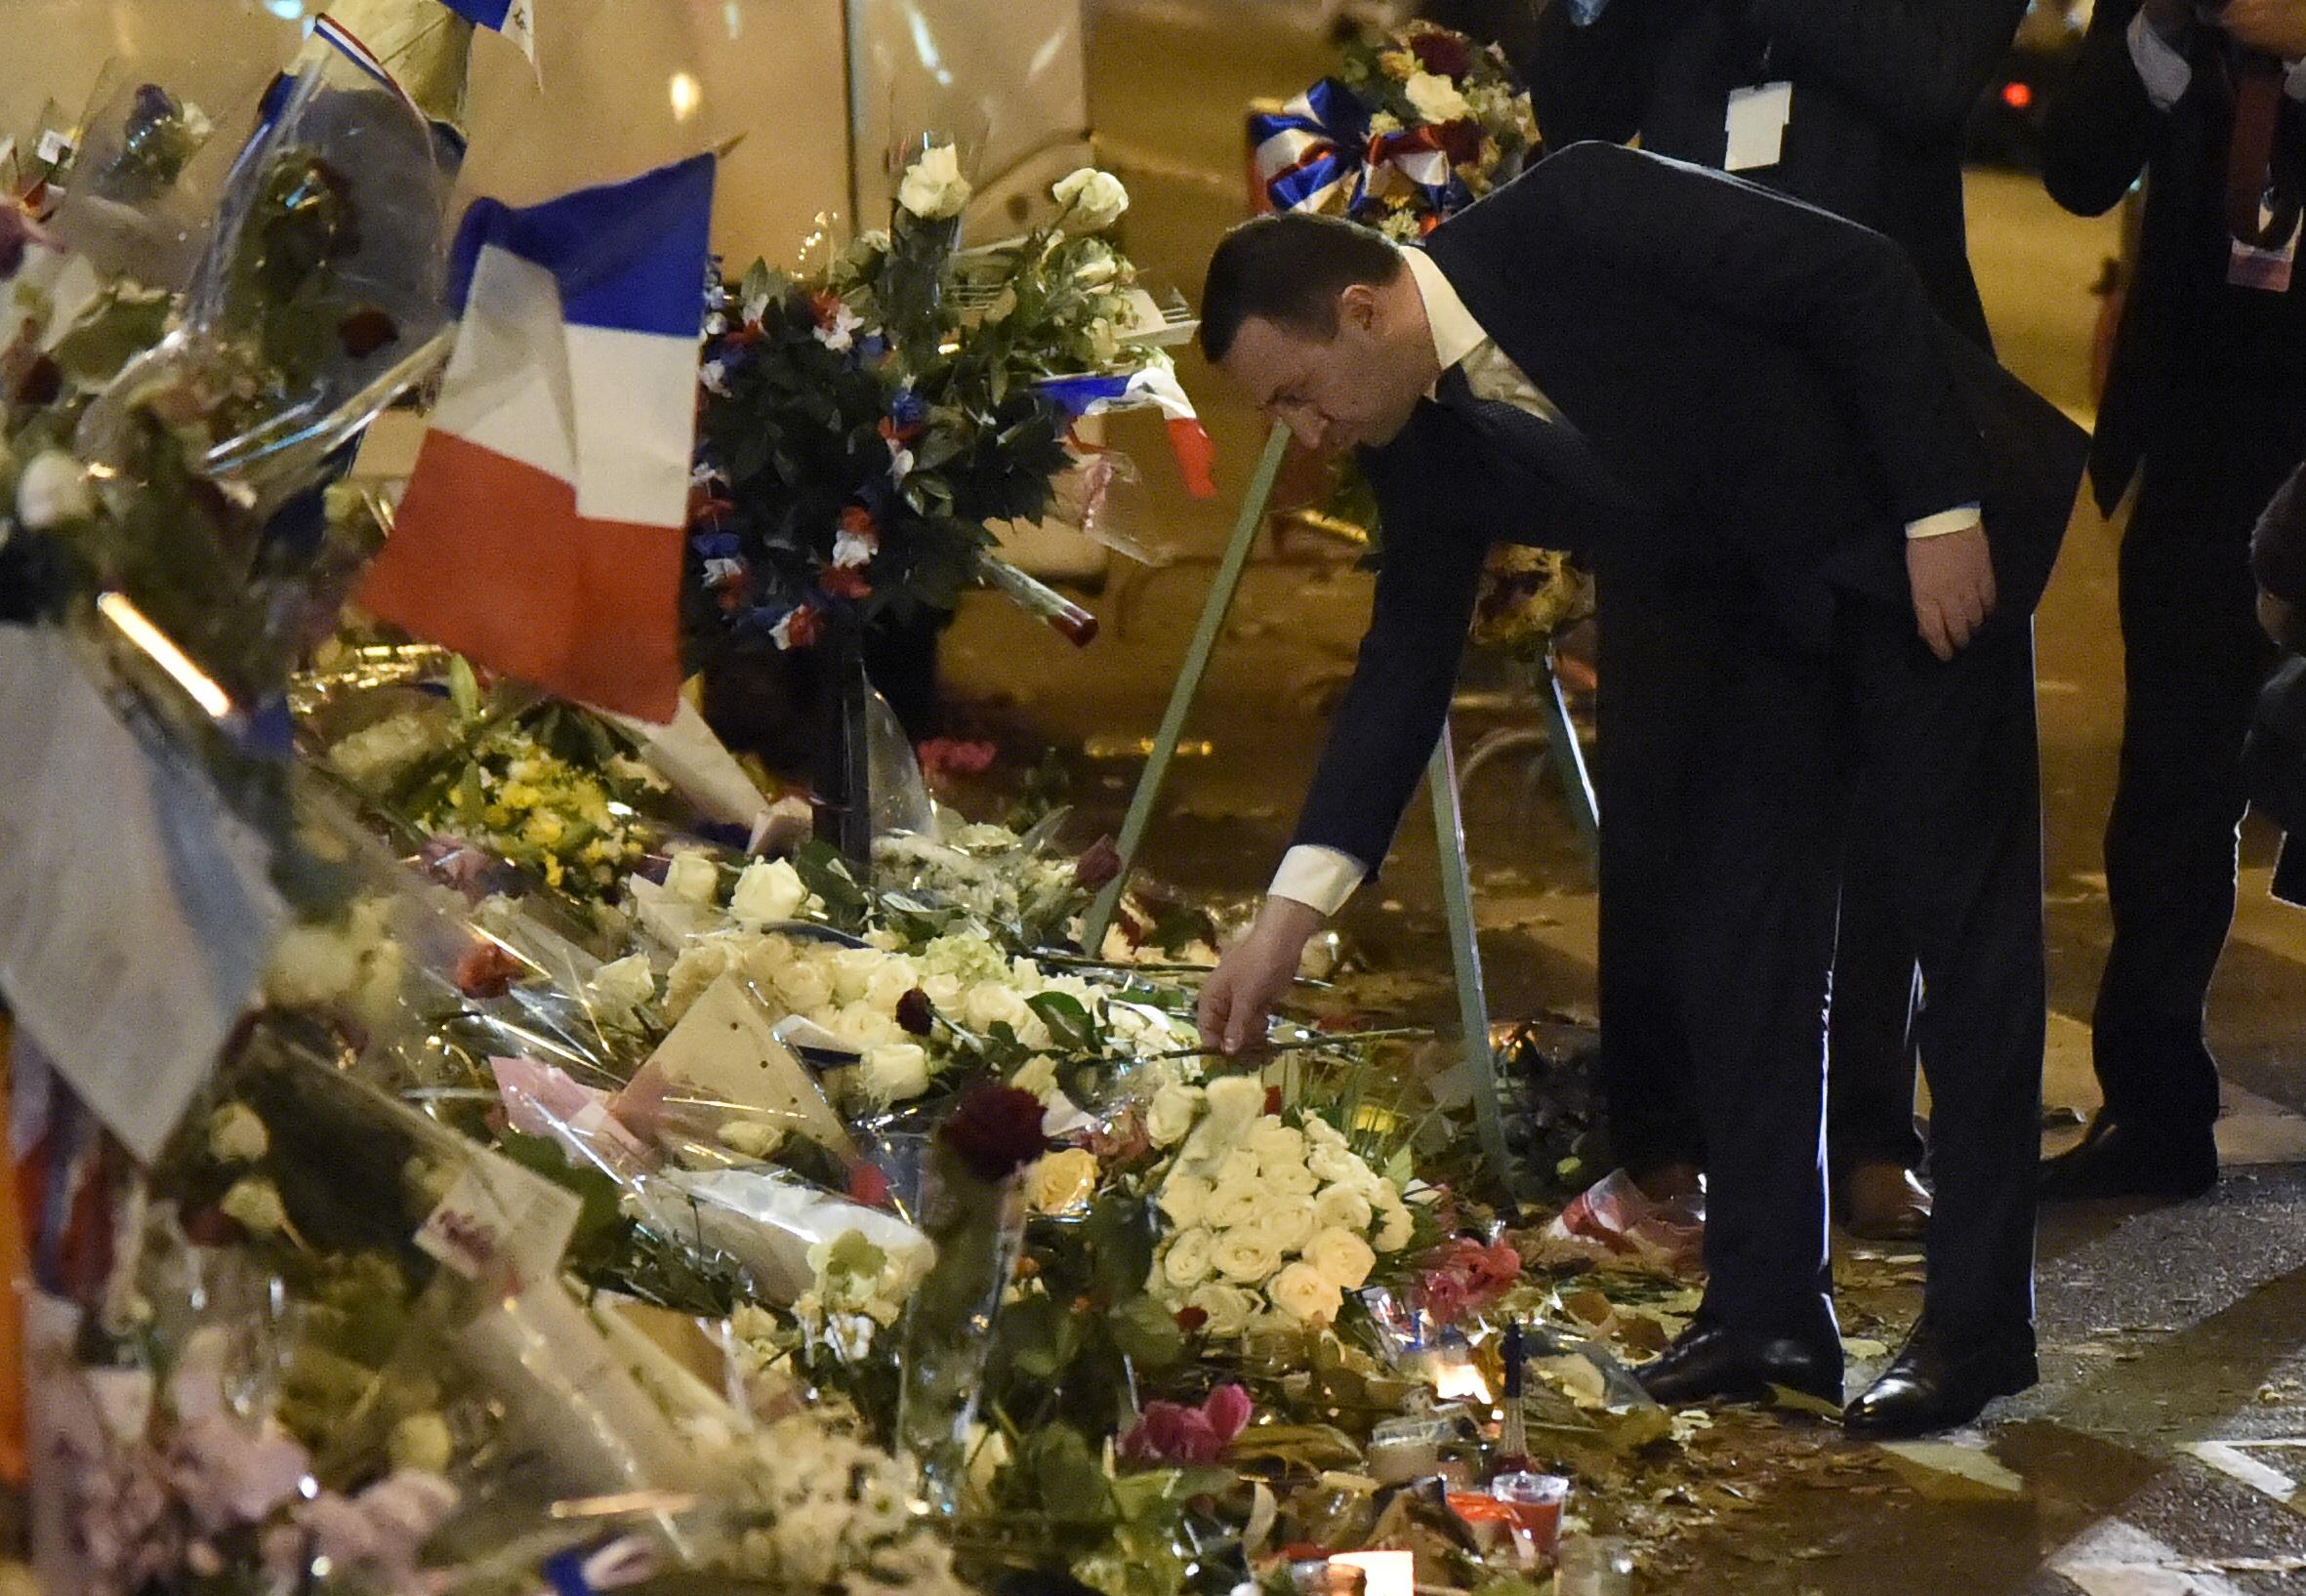 Georgia's Prime Minister Irakli Garibashvili pays tribute to the victims of the November 13 terrorist attacks at a makeshift memorial in front of the Bataclan music hall in Paris, on November 30, 2015.